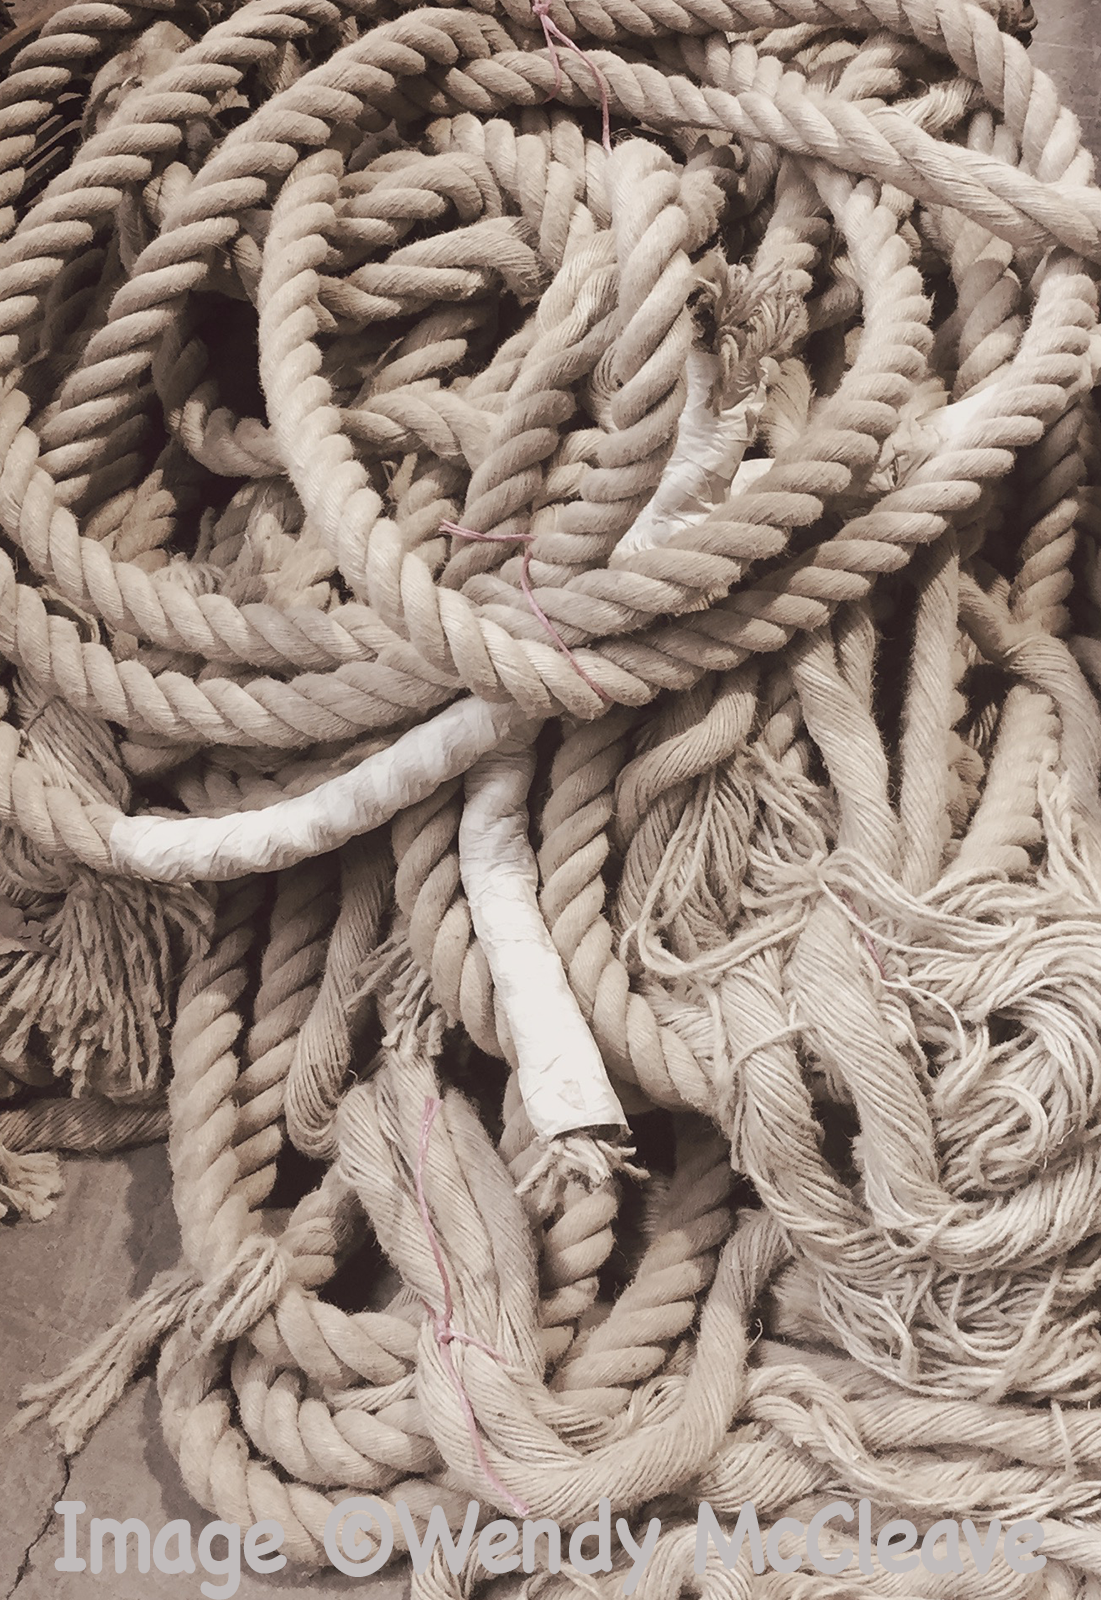 Coils of old rope at a reclamation centre